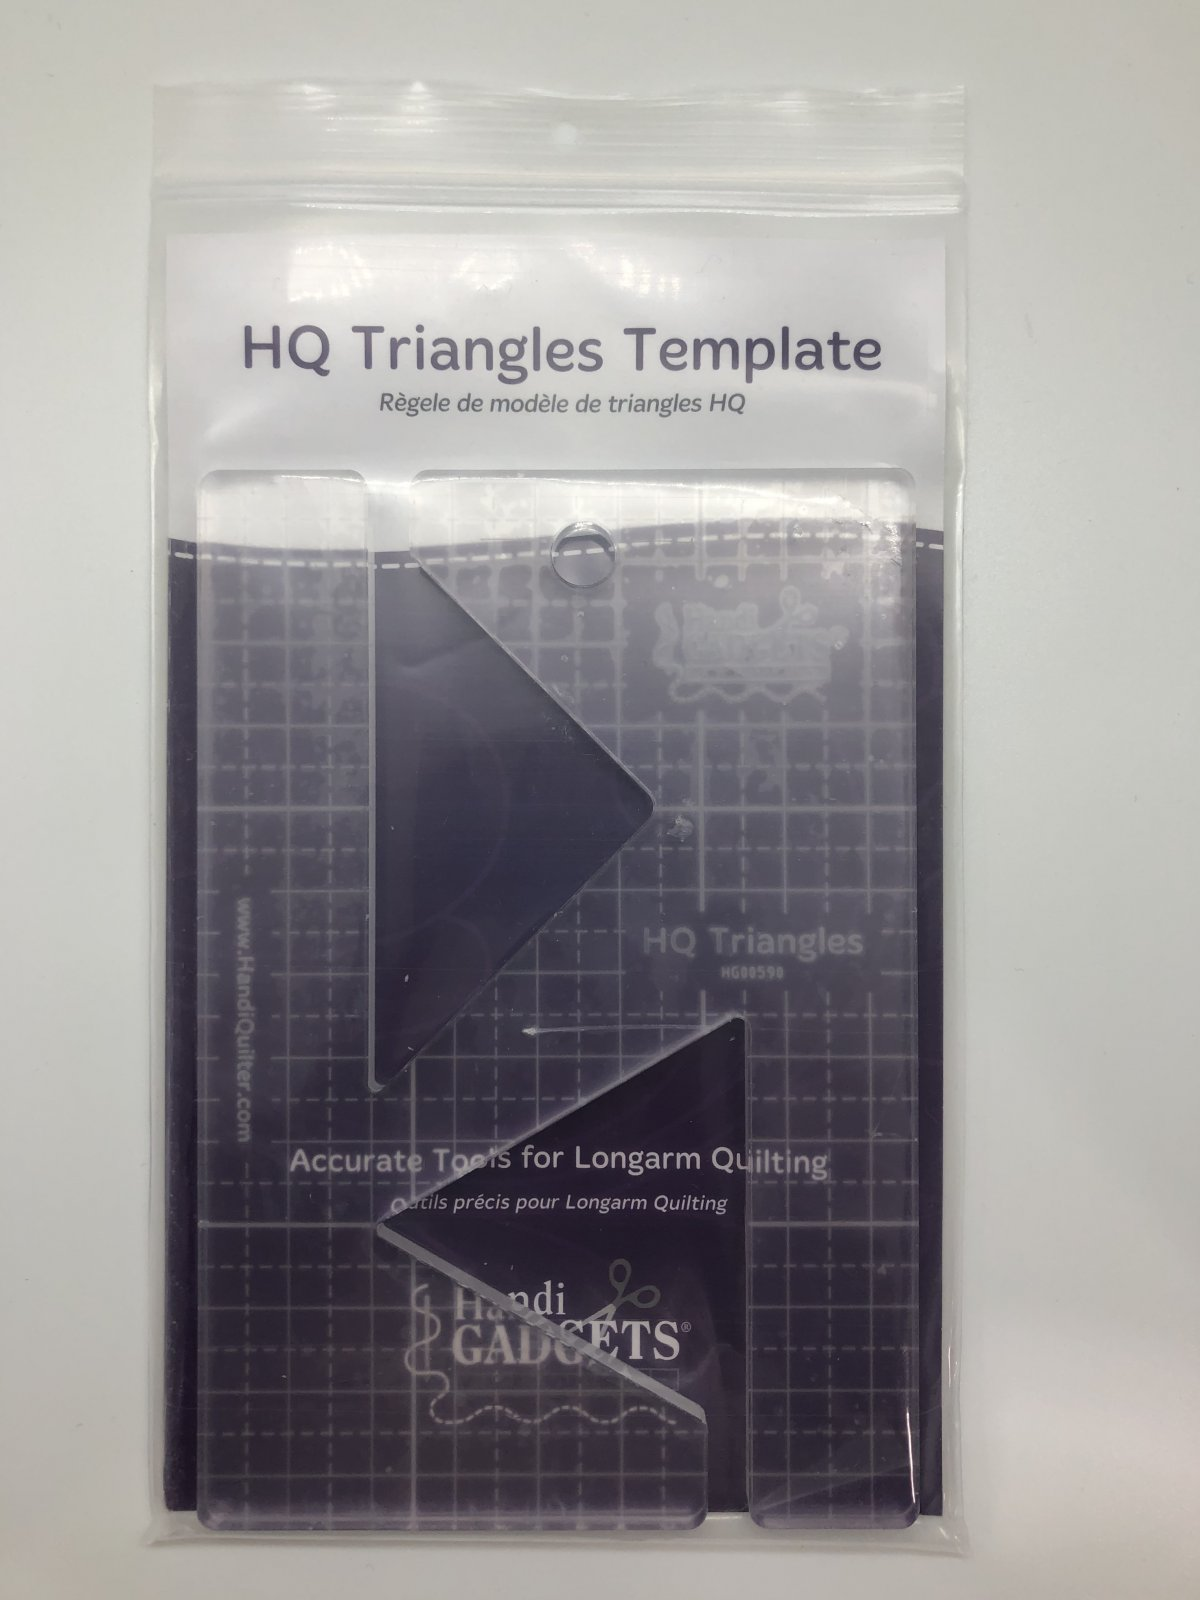 HQ Triangles Template